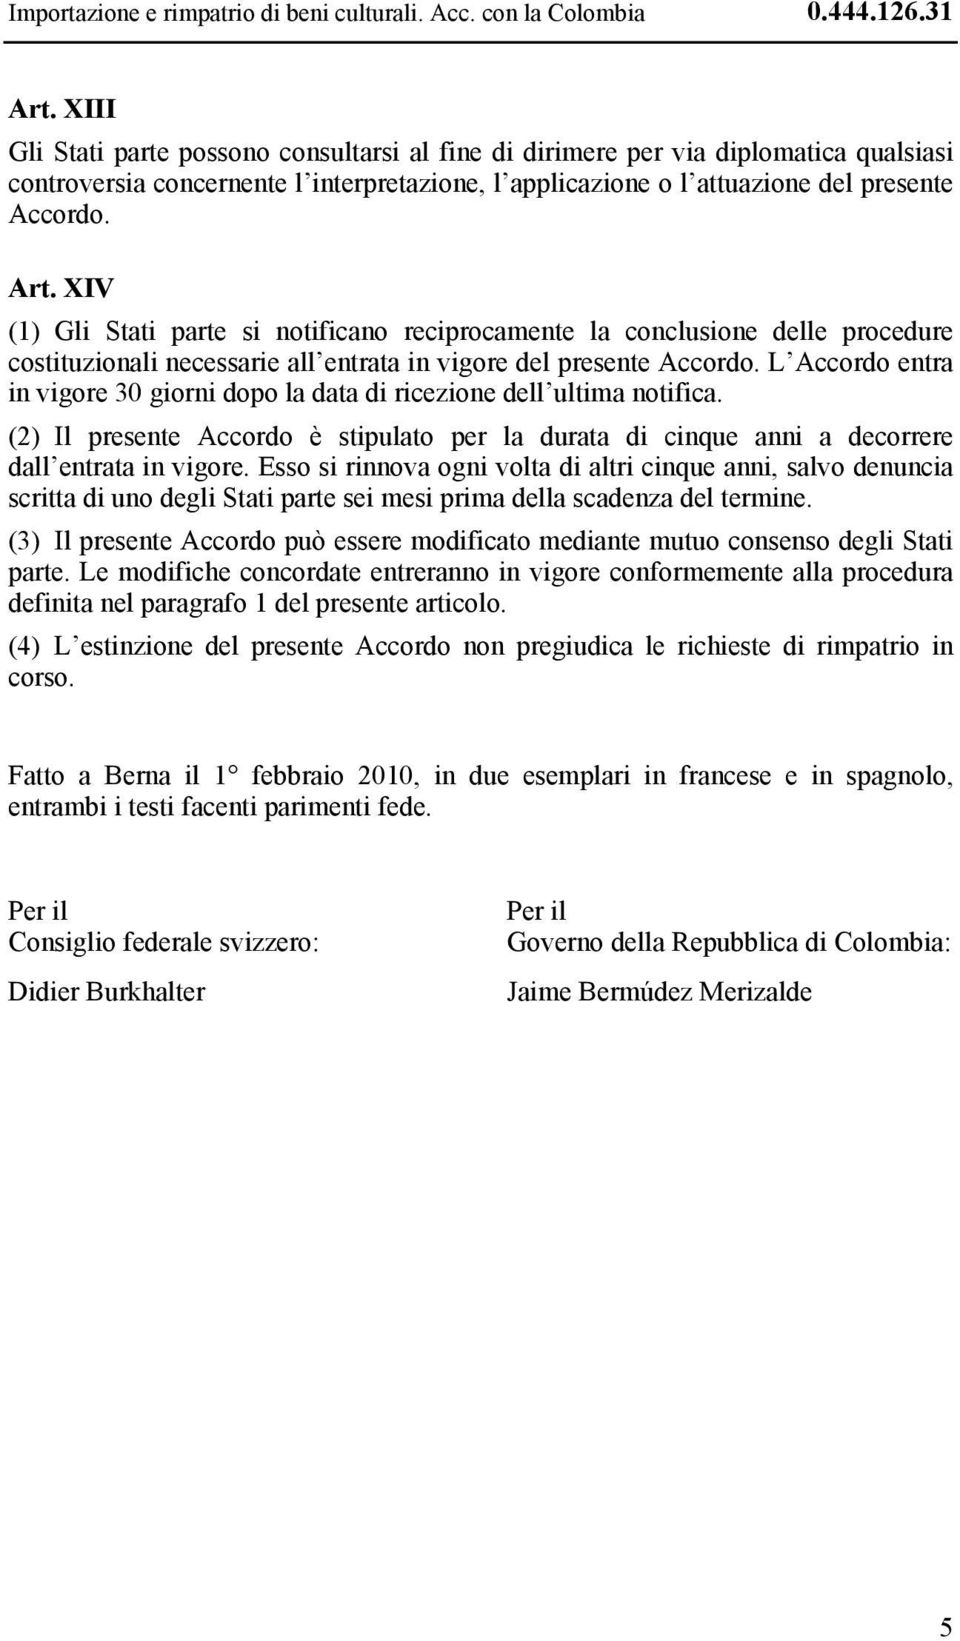 XIV (1) Gli Stati parte si notificano reciprocamente la conclusione delle procedure costituzionali necessarie all entrata in vigore del presente Accordo.